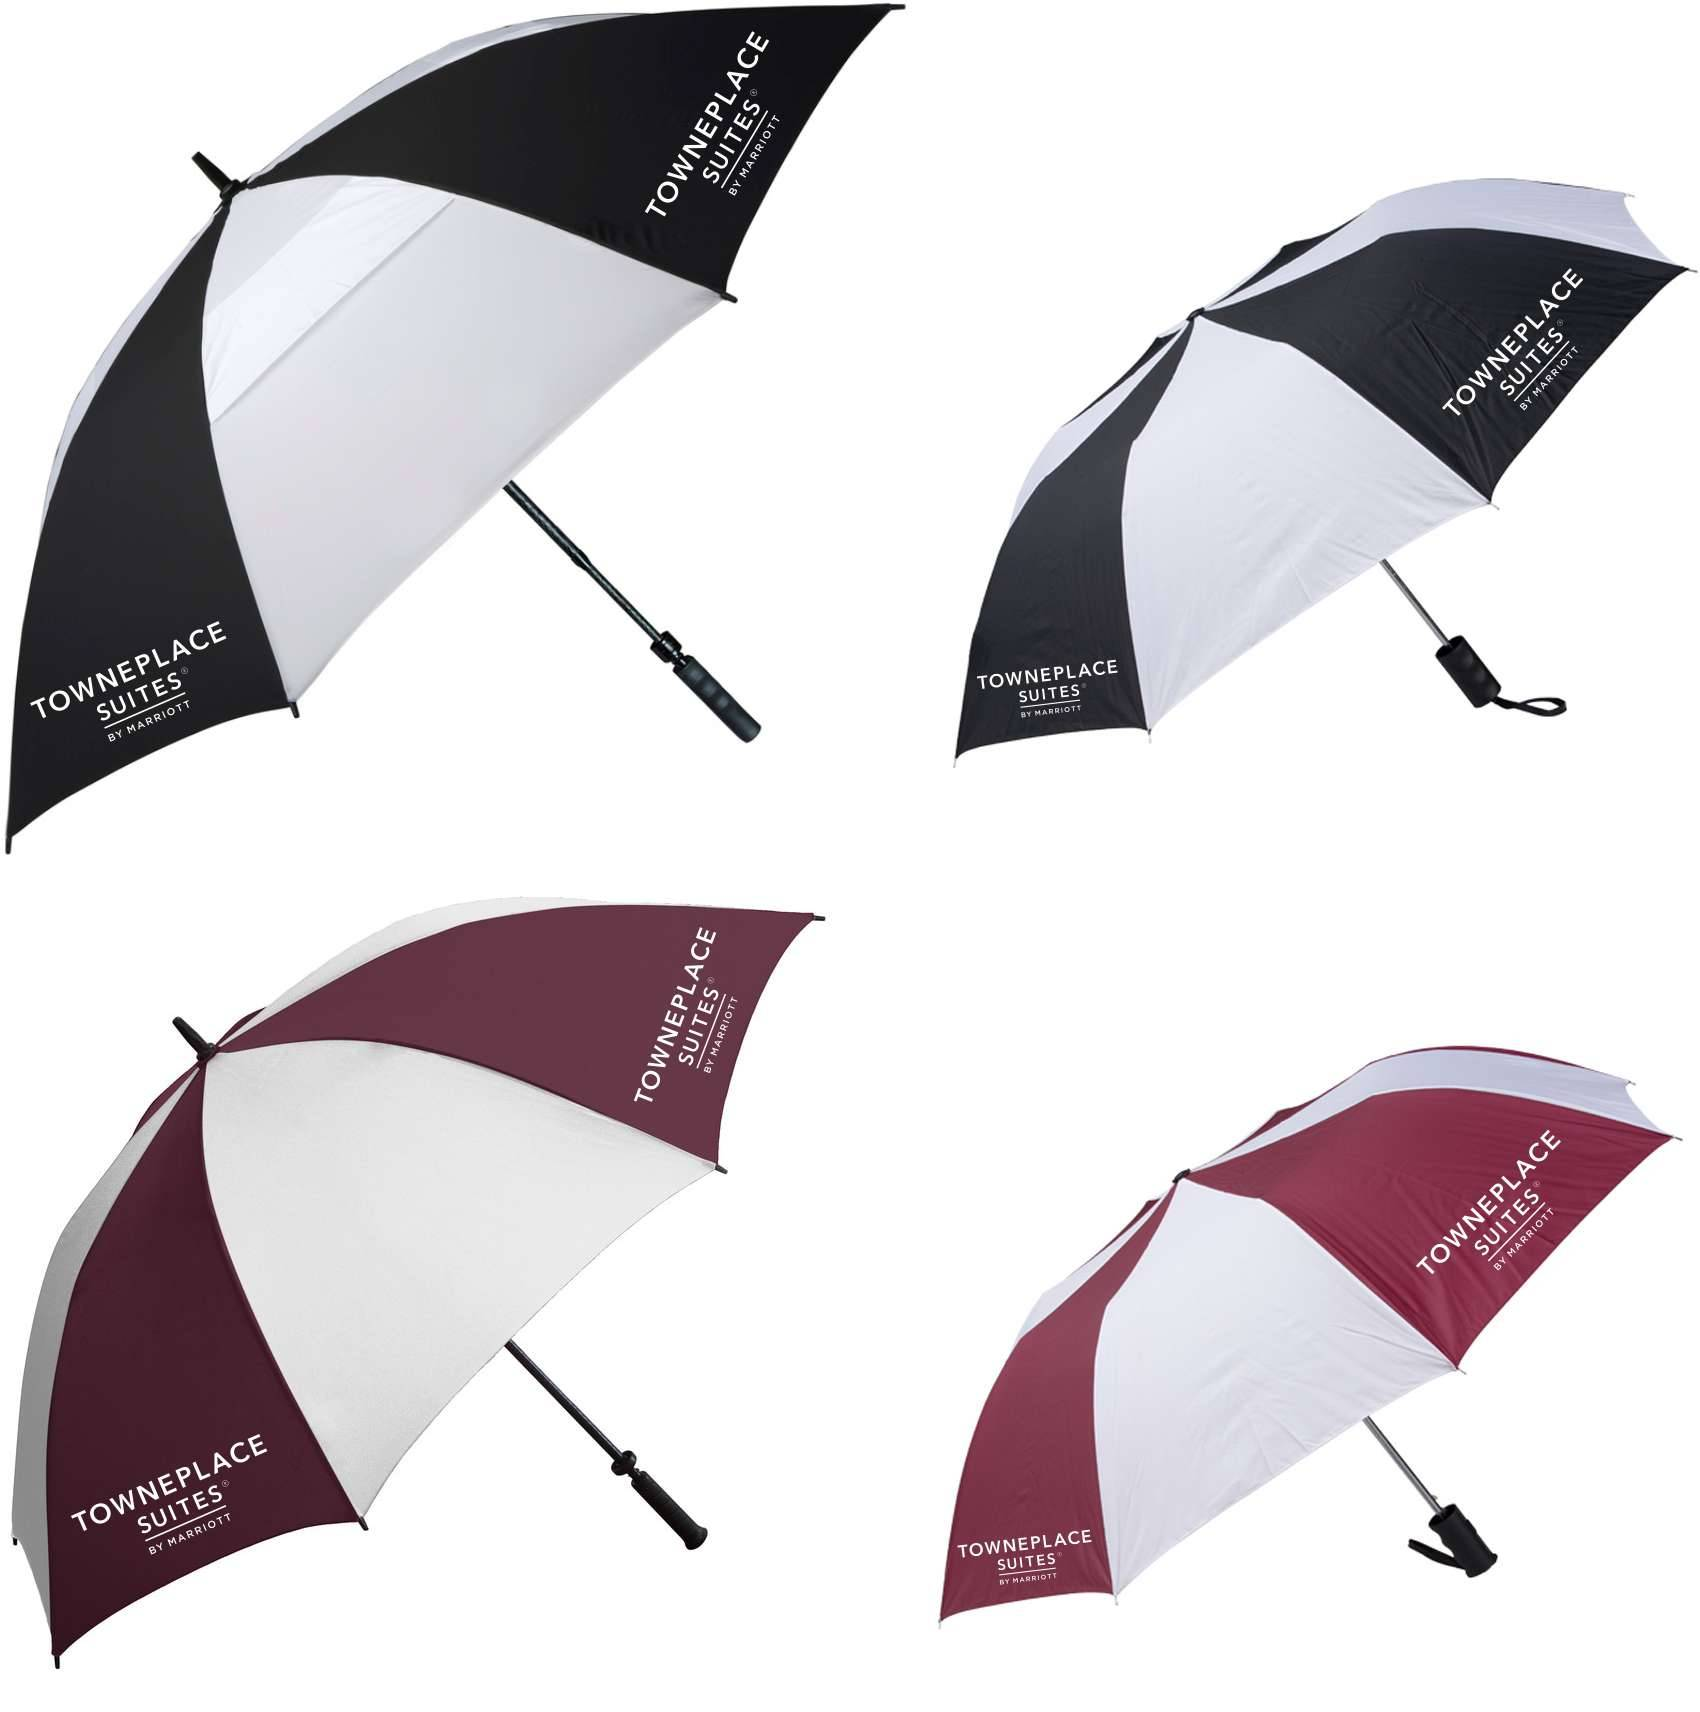 "62"" Golf/Gatehouse Umbrellas + 42"" Auto-Open Umbrellas. 2 LOGOS on each umbrella!"